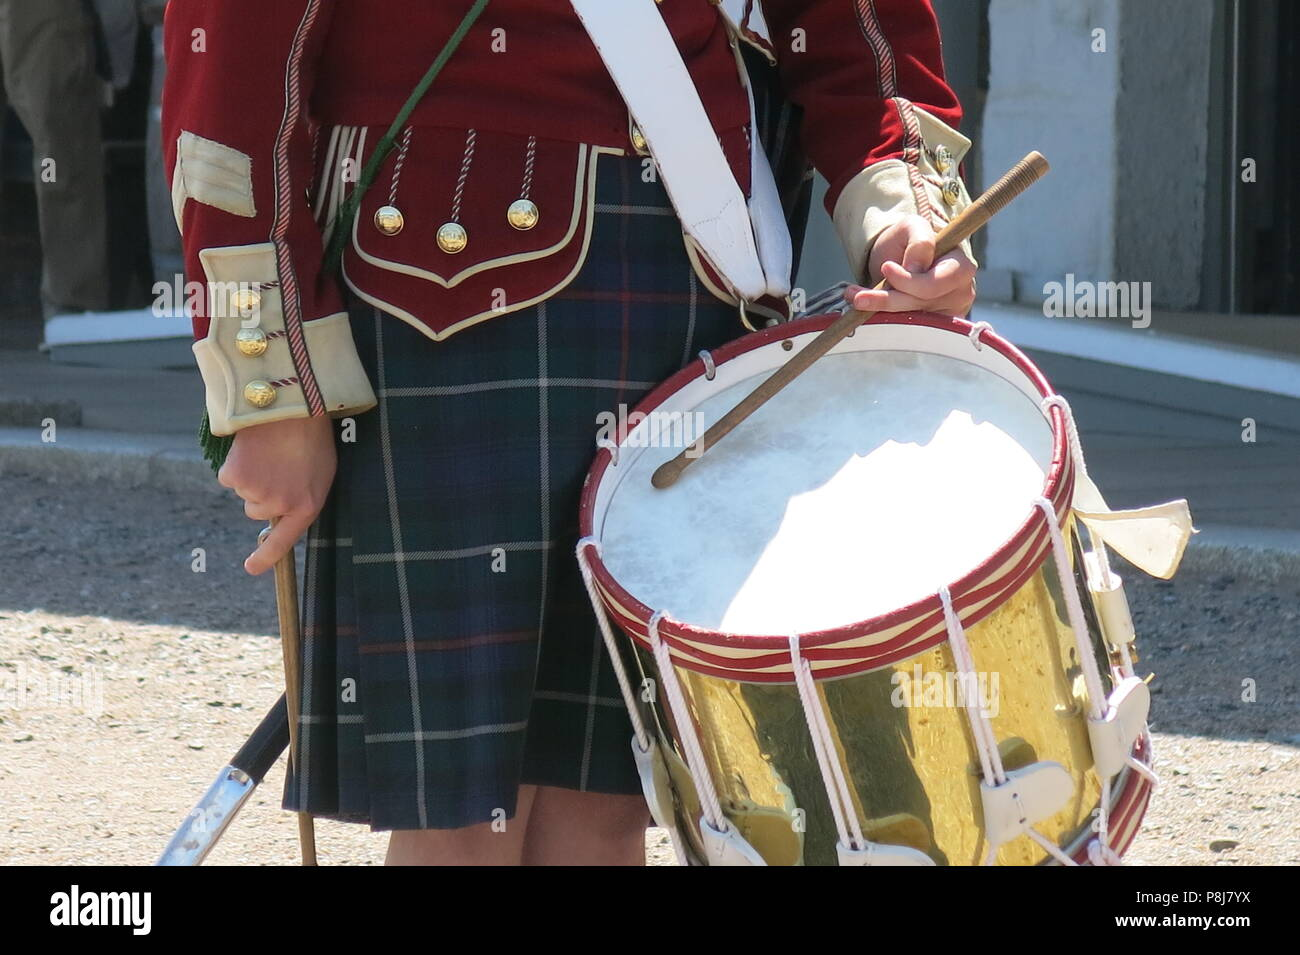 Drum And Pipes Stock Photos & Drum And Pipes Stock Images - Alamy